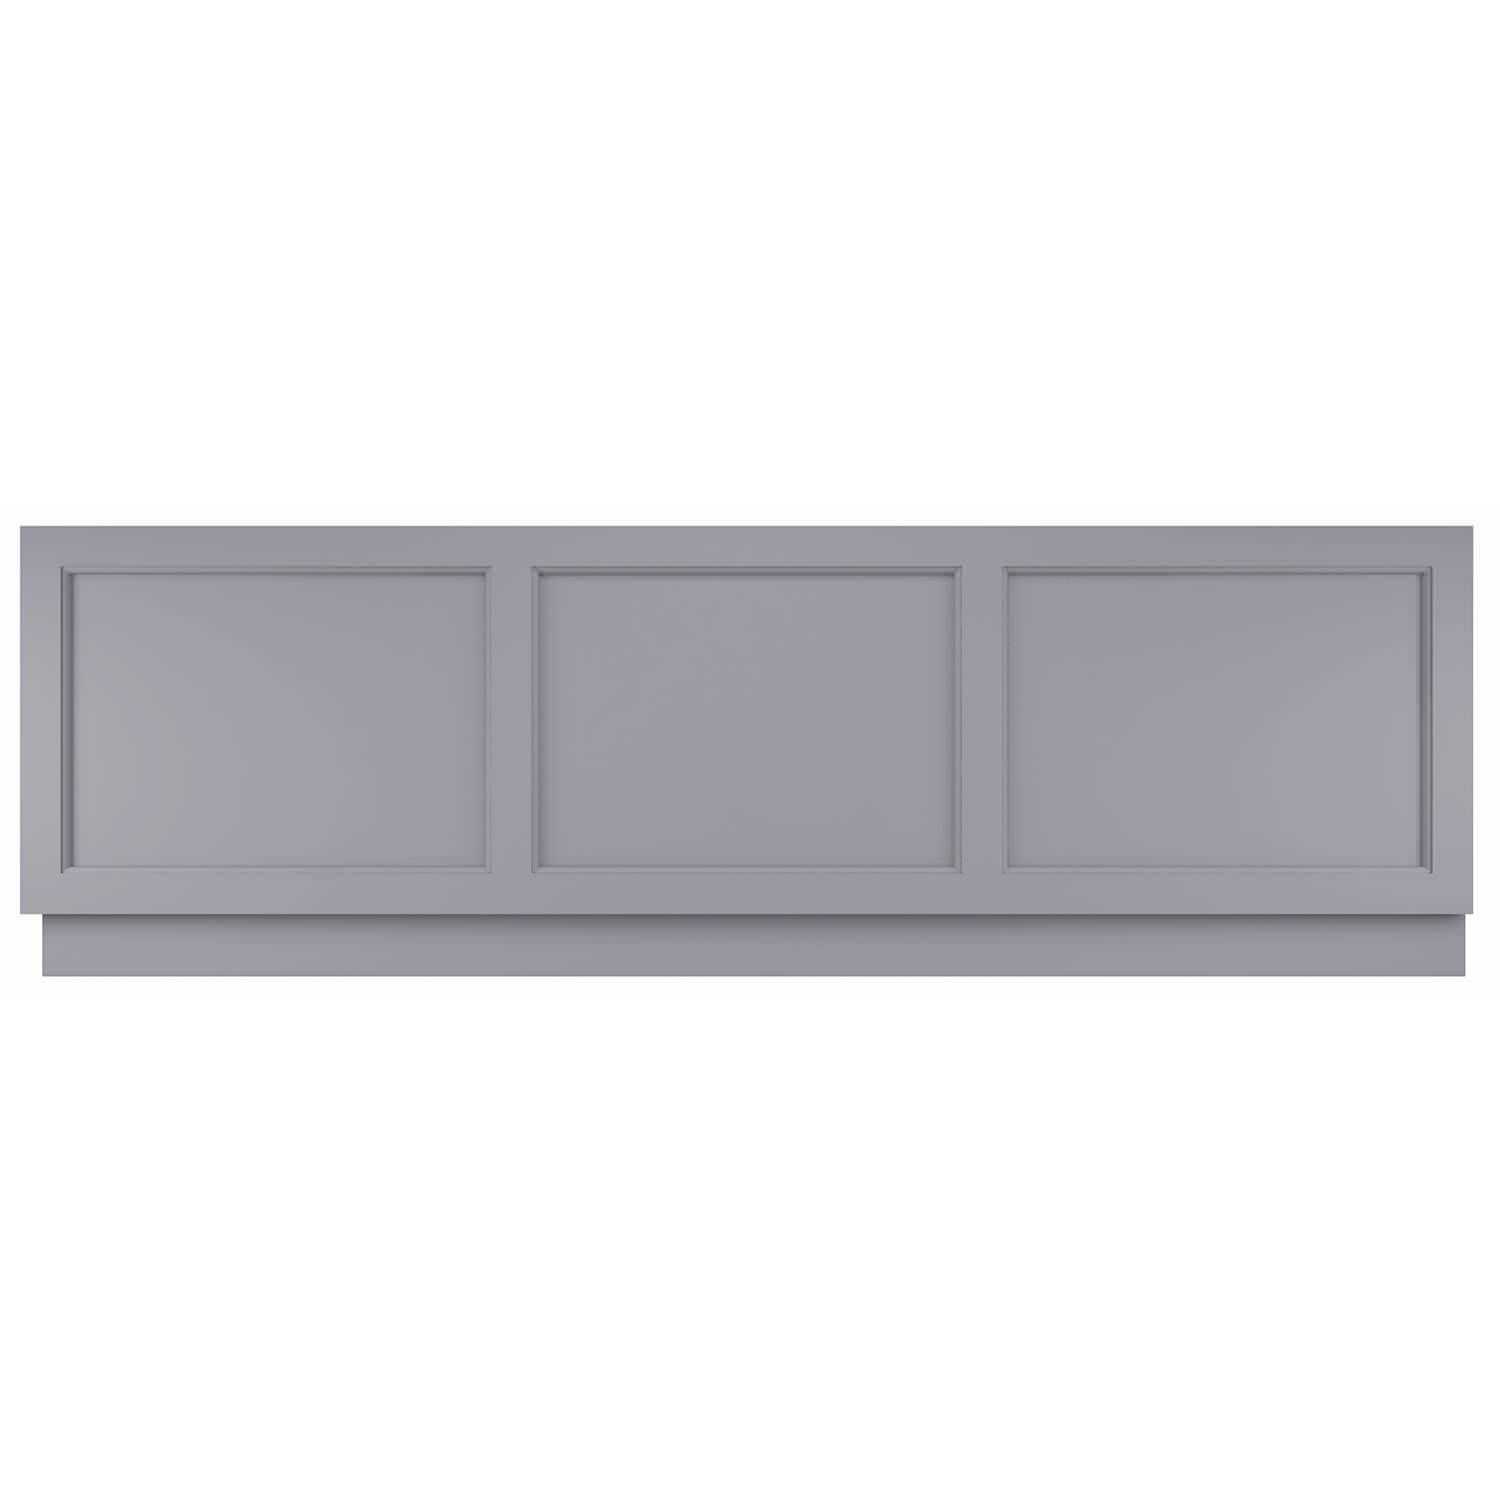 bayswater 1800 x 560mm bath front panel bayf137 more. Black Bedroom Furniture Sets. Home Design Ideas